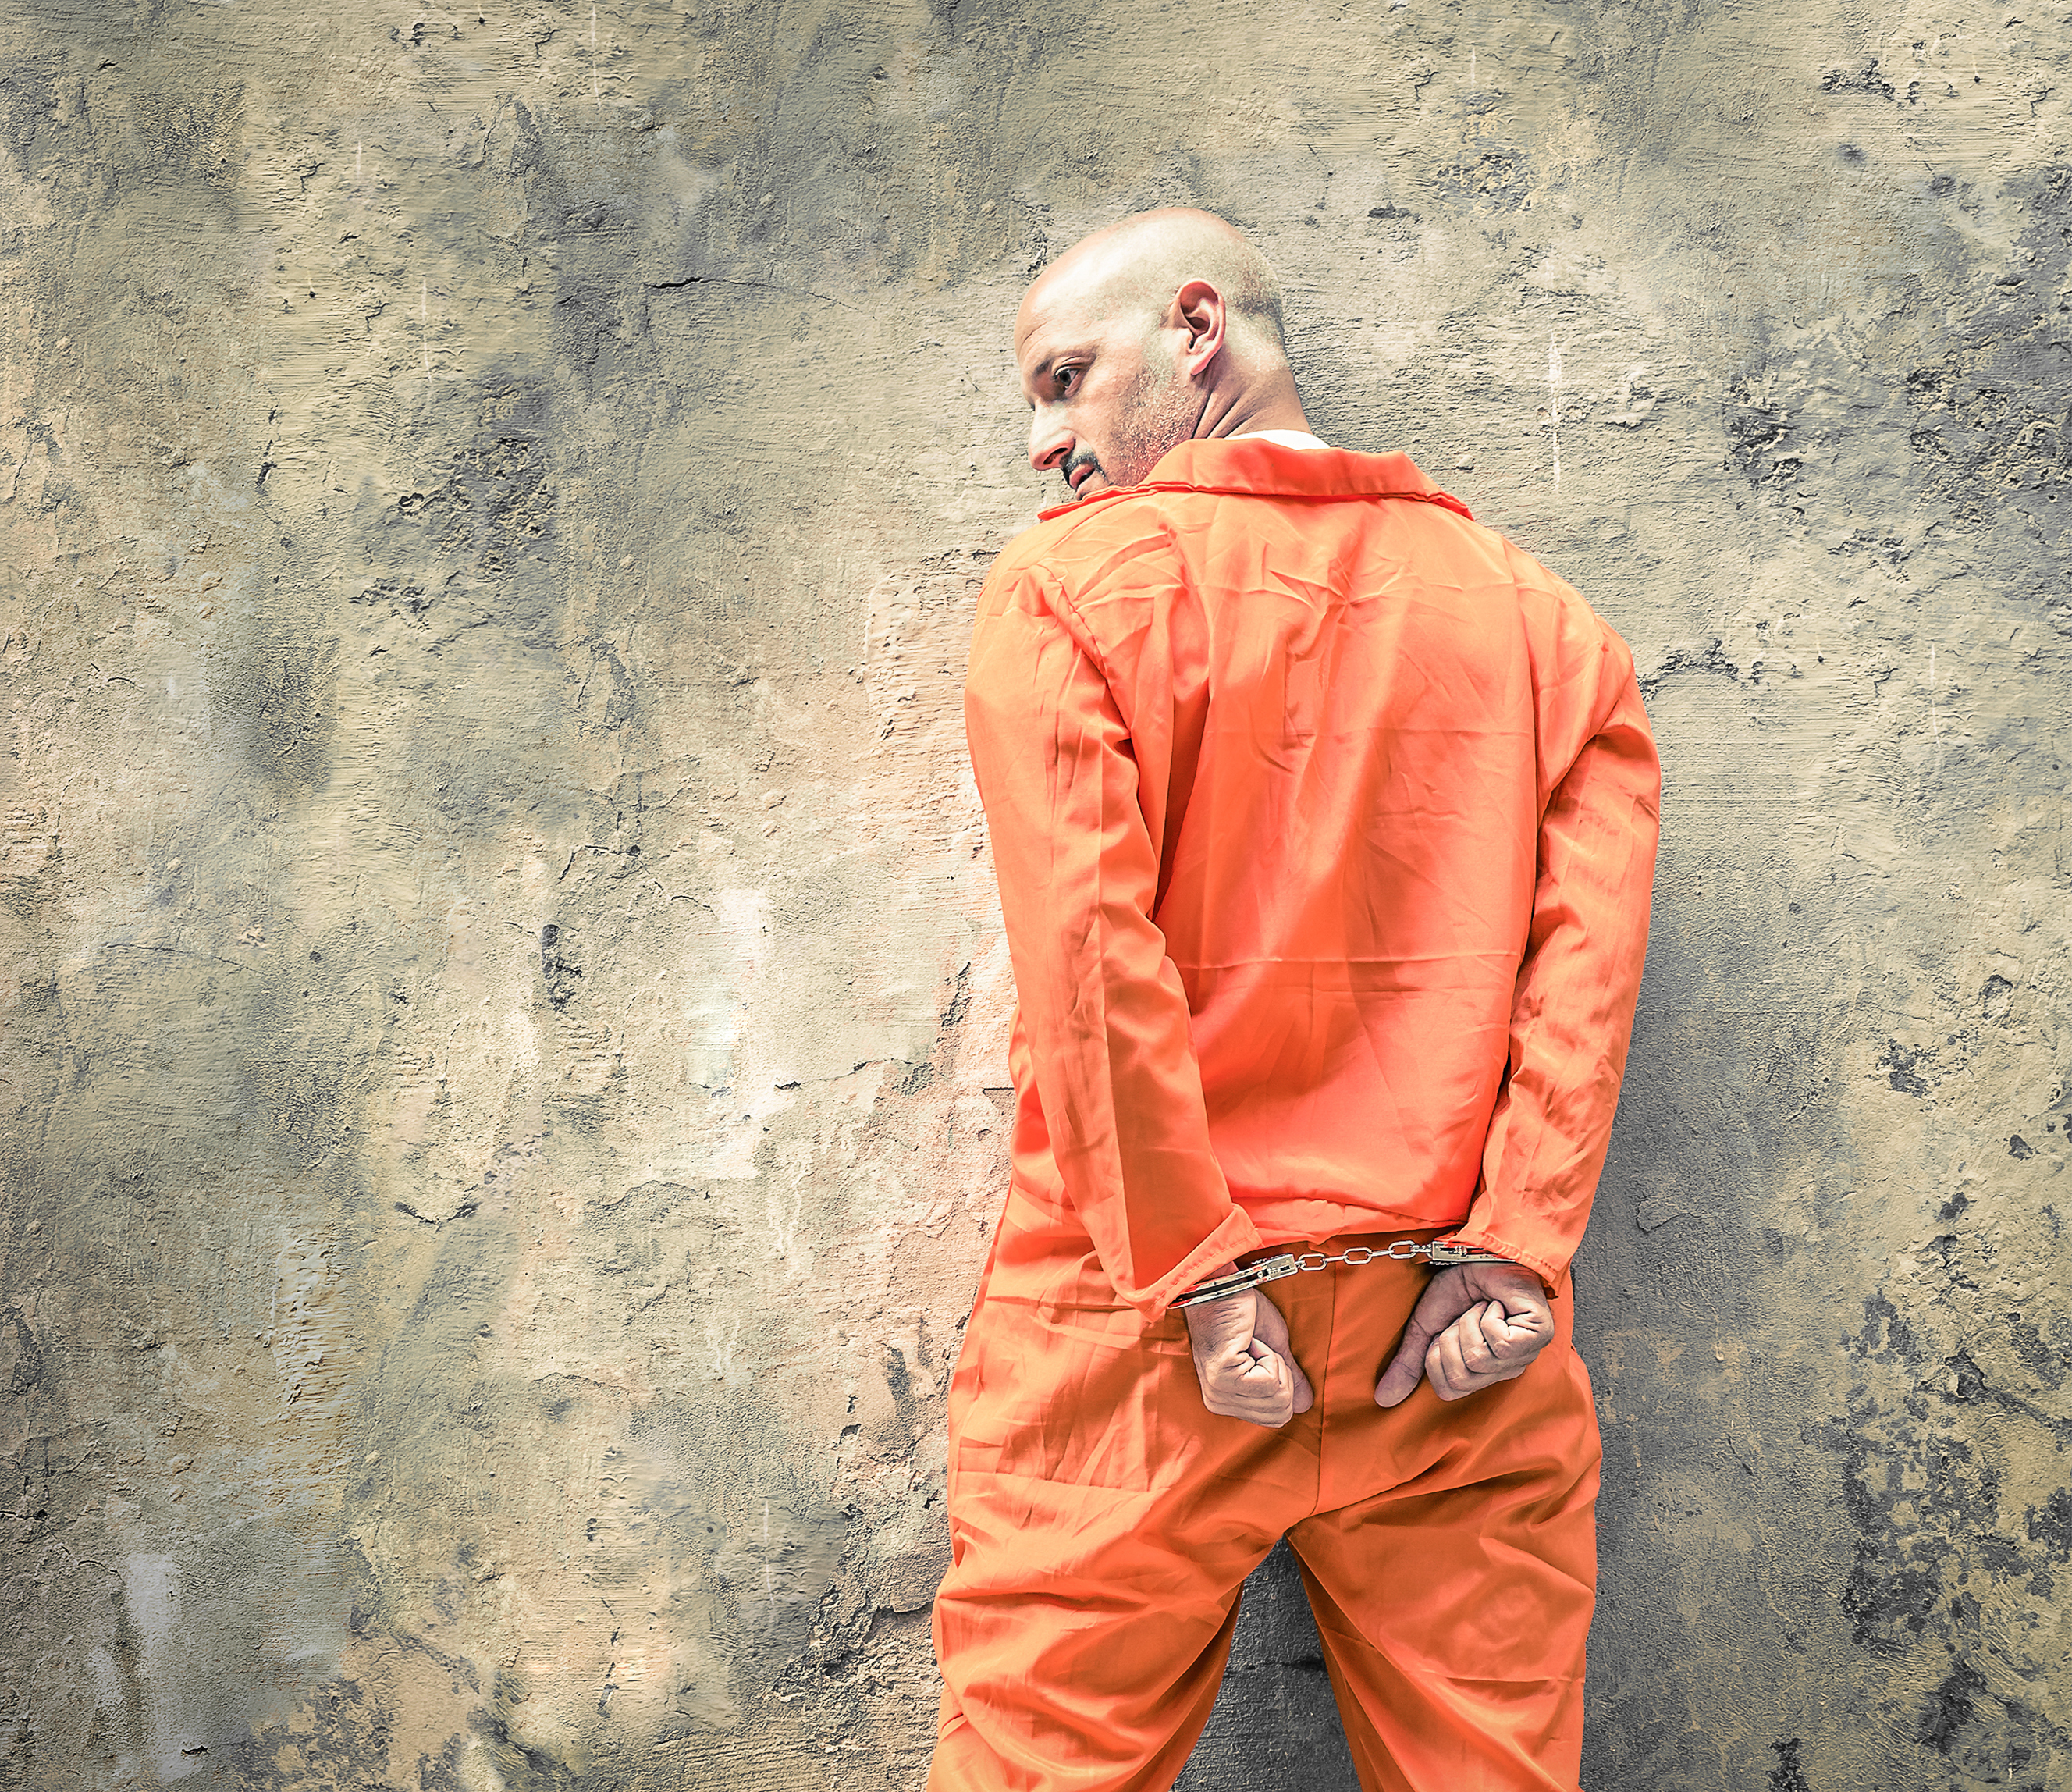 Rear View Of Man With Handcuffs Standing Against Wall